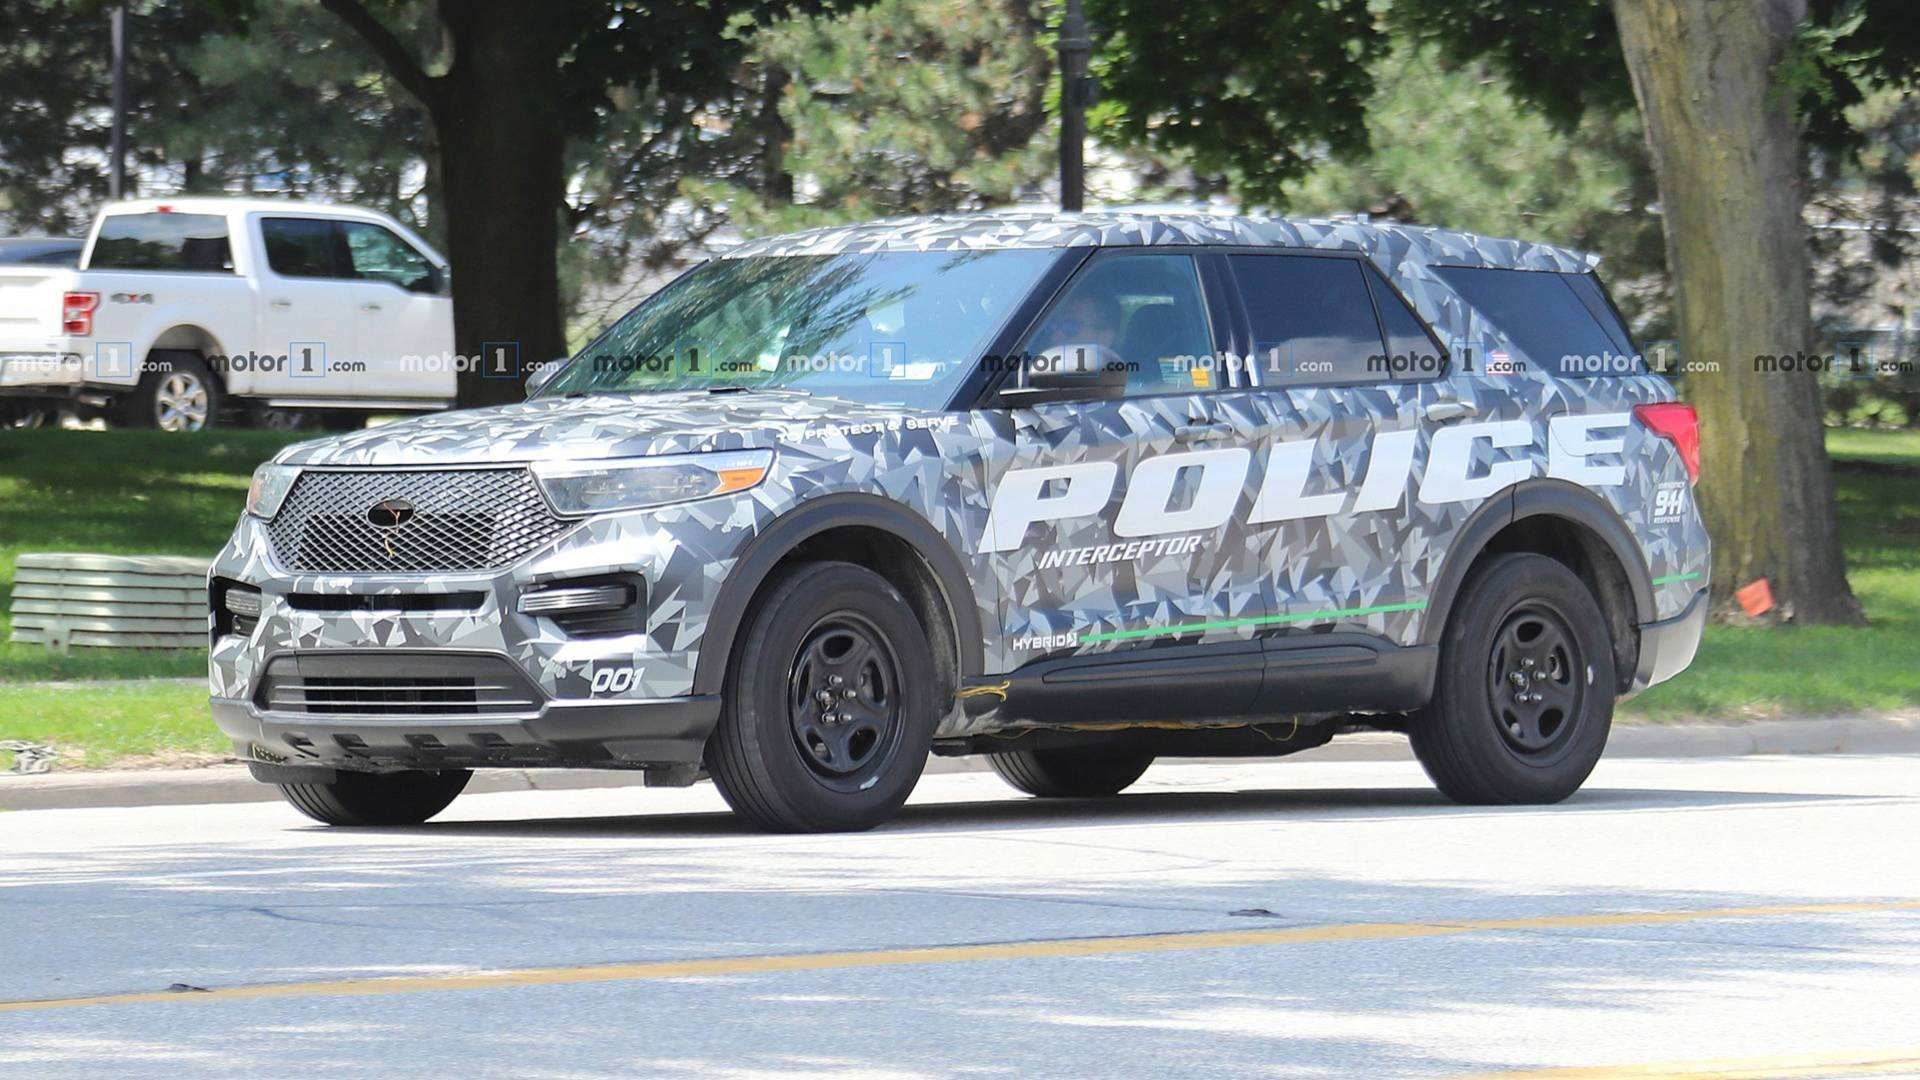 55 Concept of 2020 Ford Police Interceptor Price and Review with 2020 Ford Police Interceptor